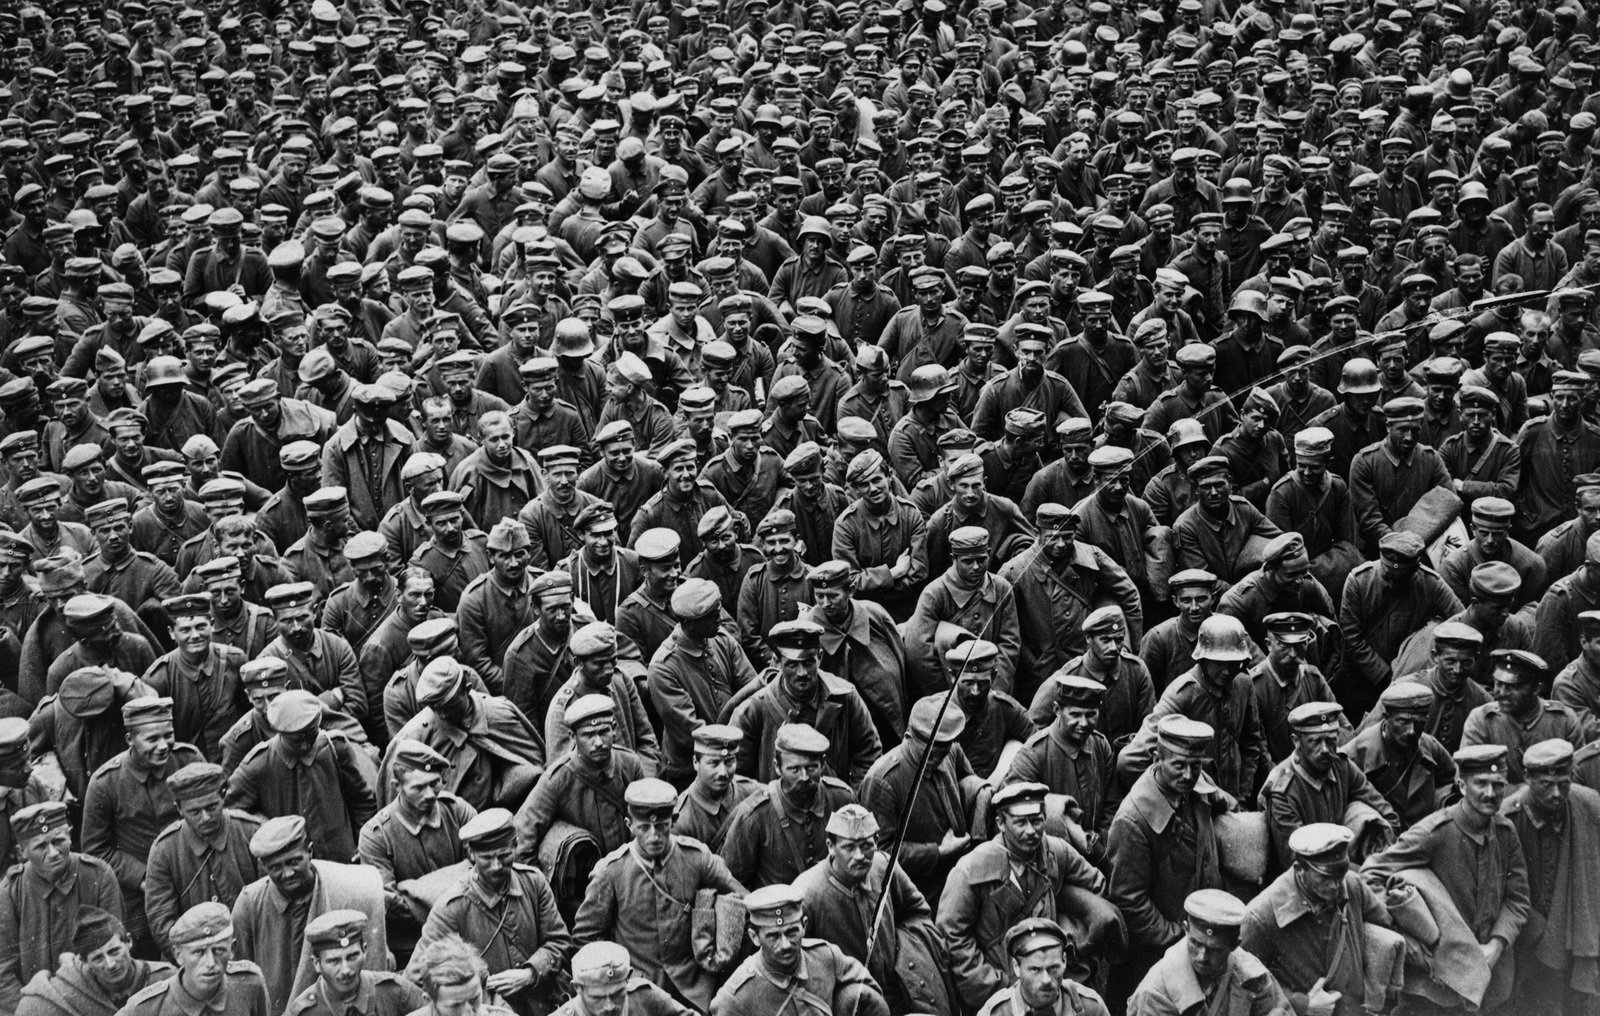 Massed German prisoners in France, probably after the Allied advance of August 1918, unknown photographer, National Library of Scotland, CC BY-NC-SA